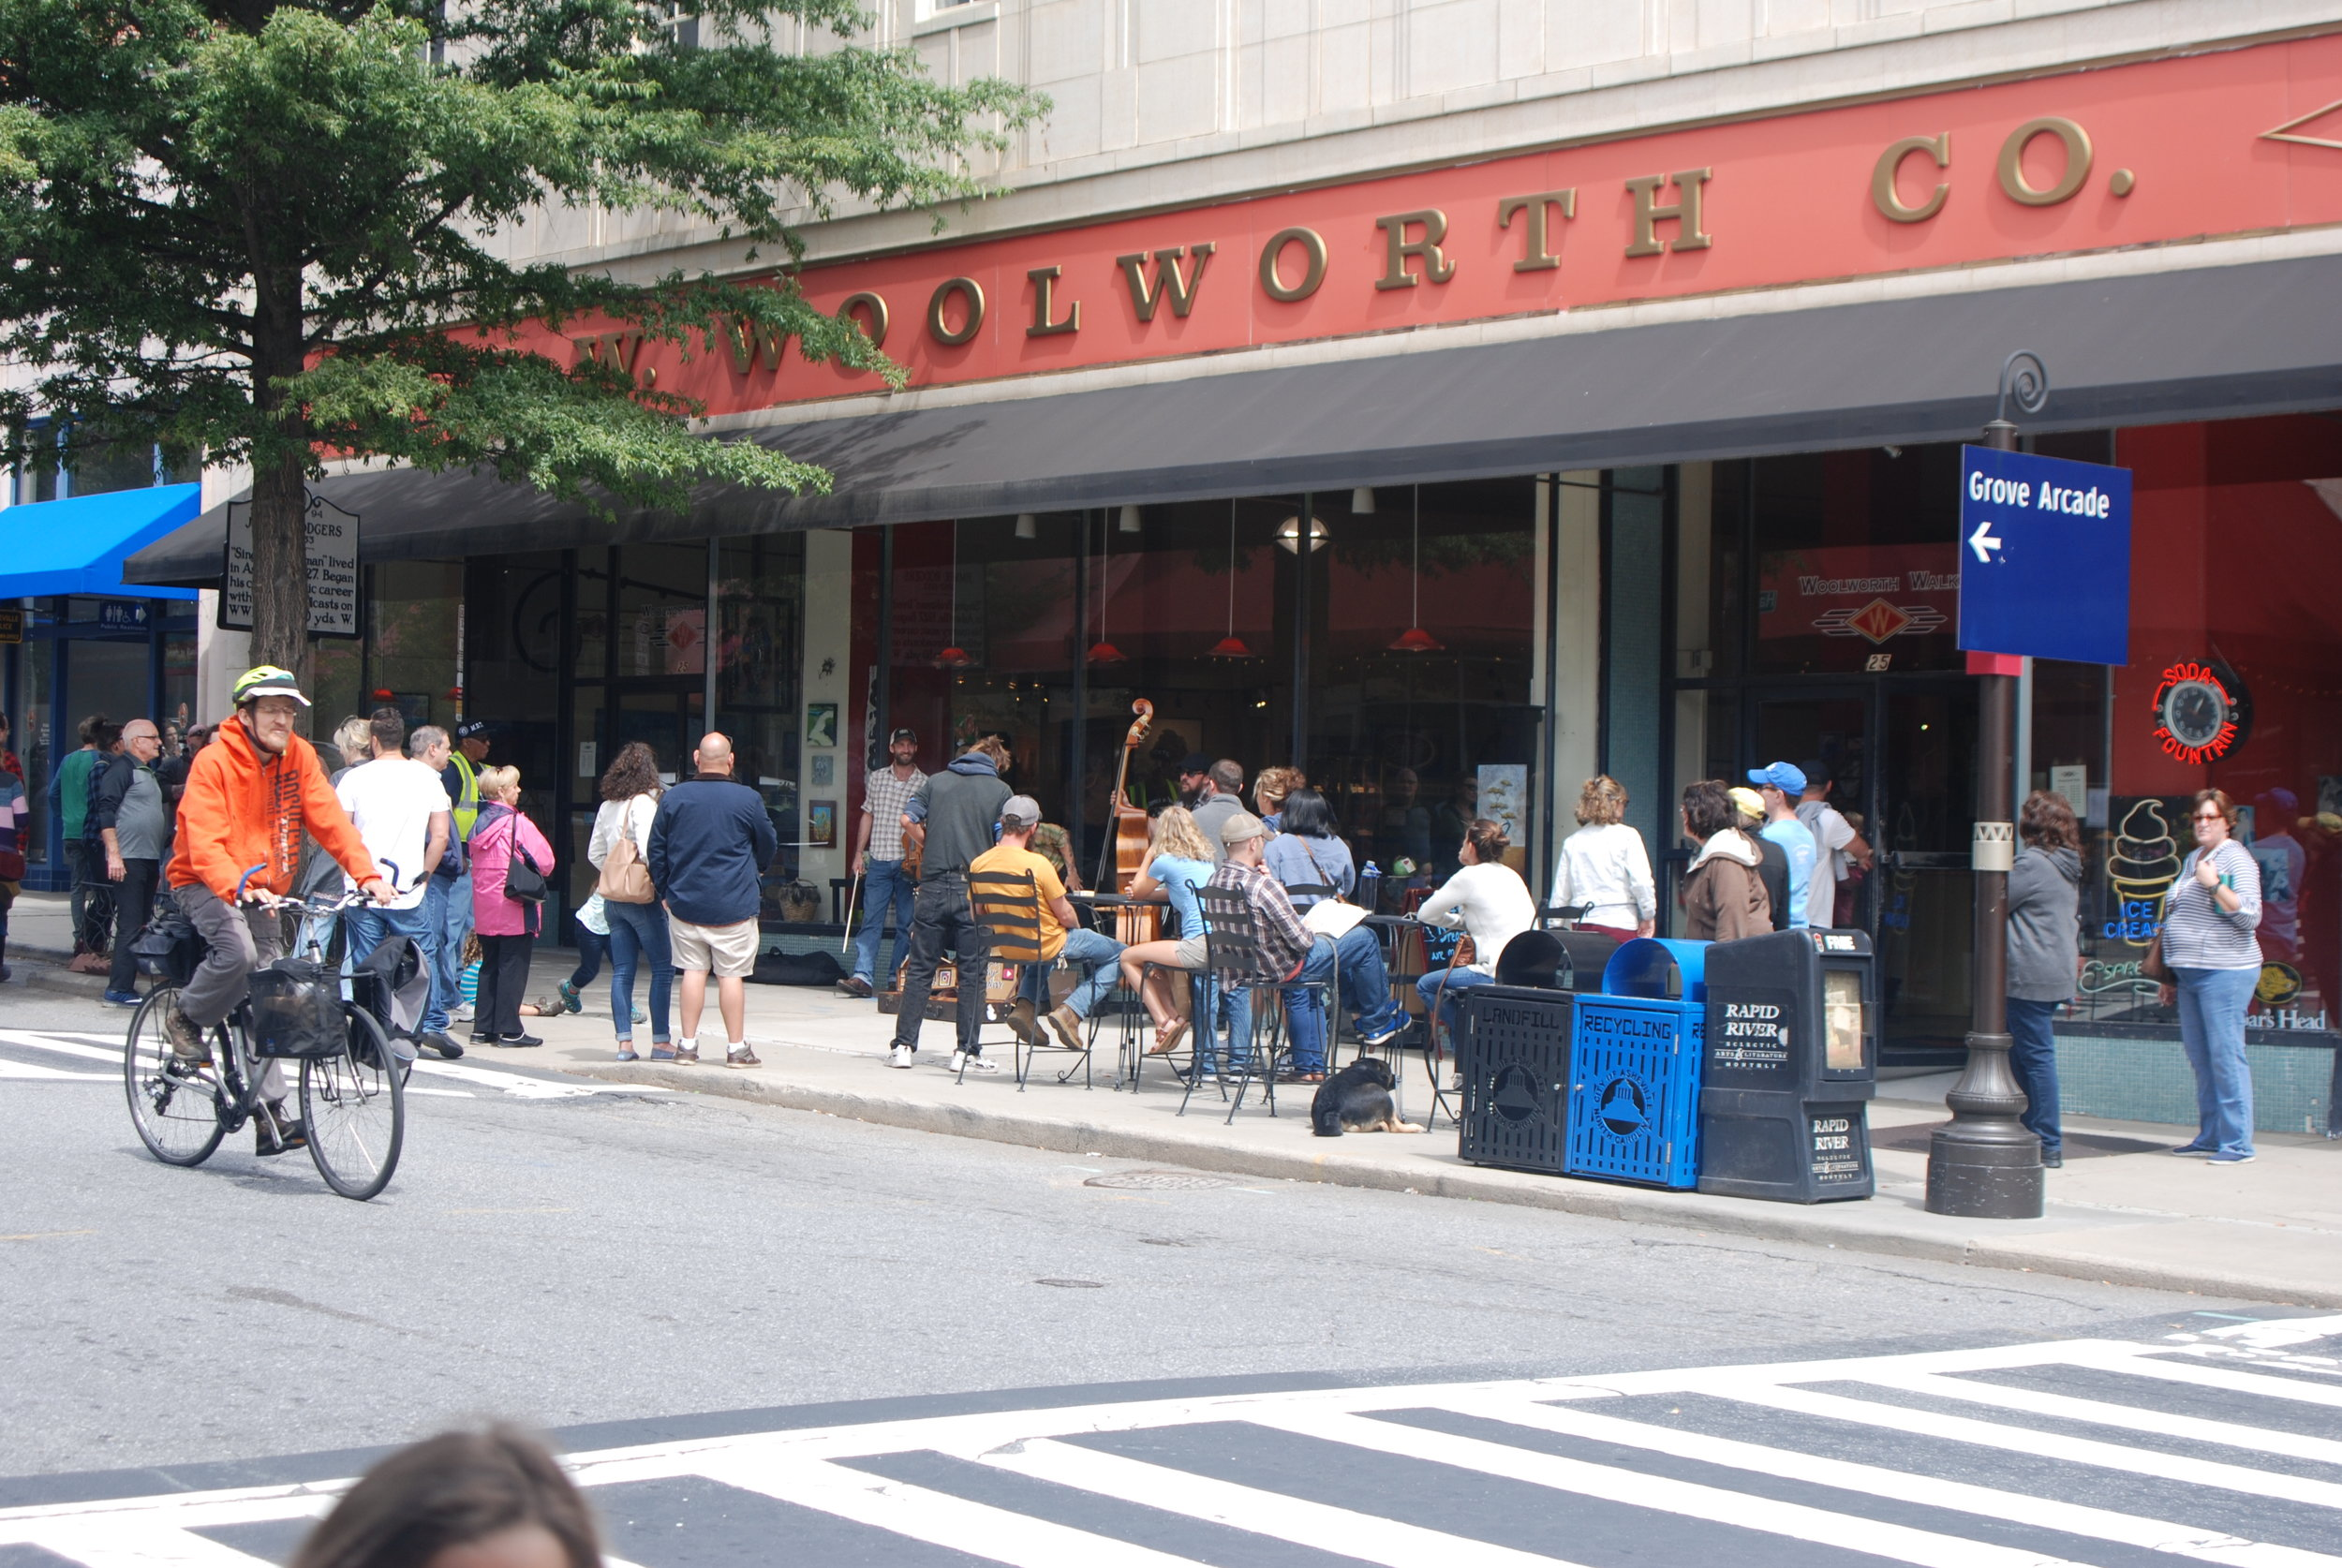 Woolworth Walk downtown.